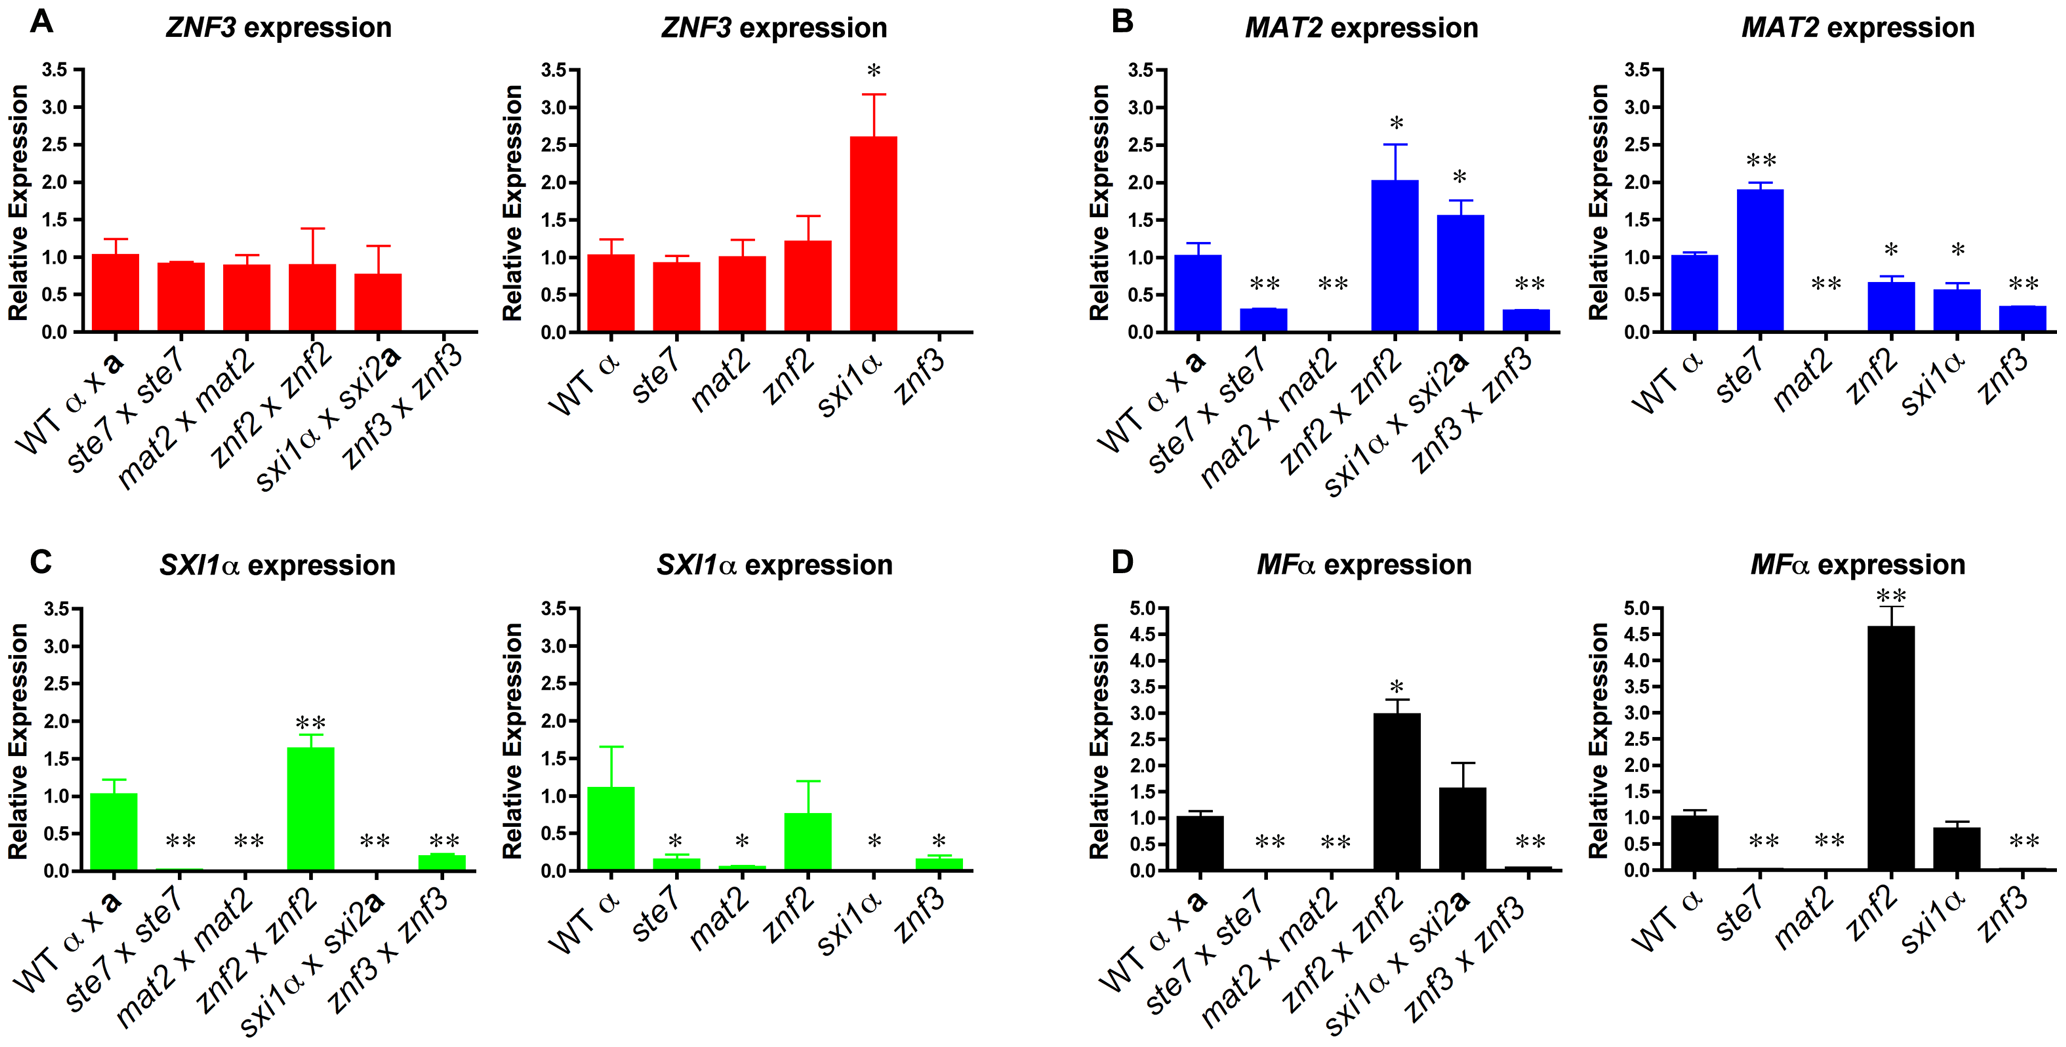 Znf3 regulates the expression of Mat2 and promotes pheromone production.